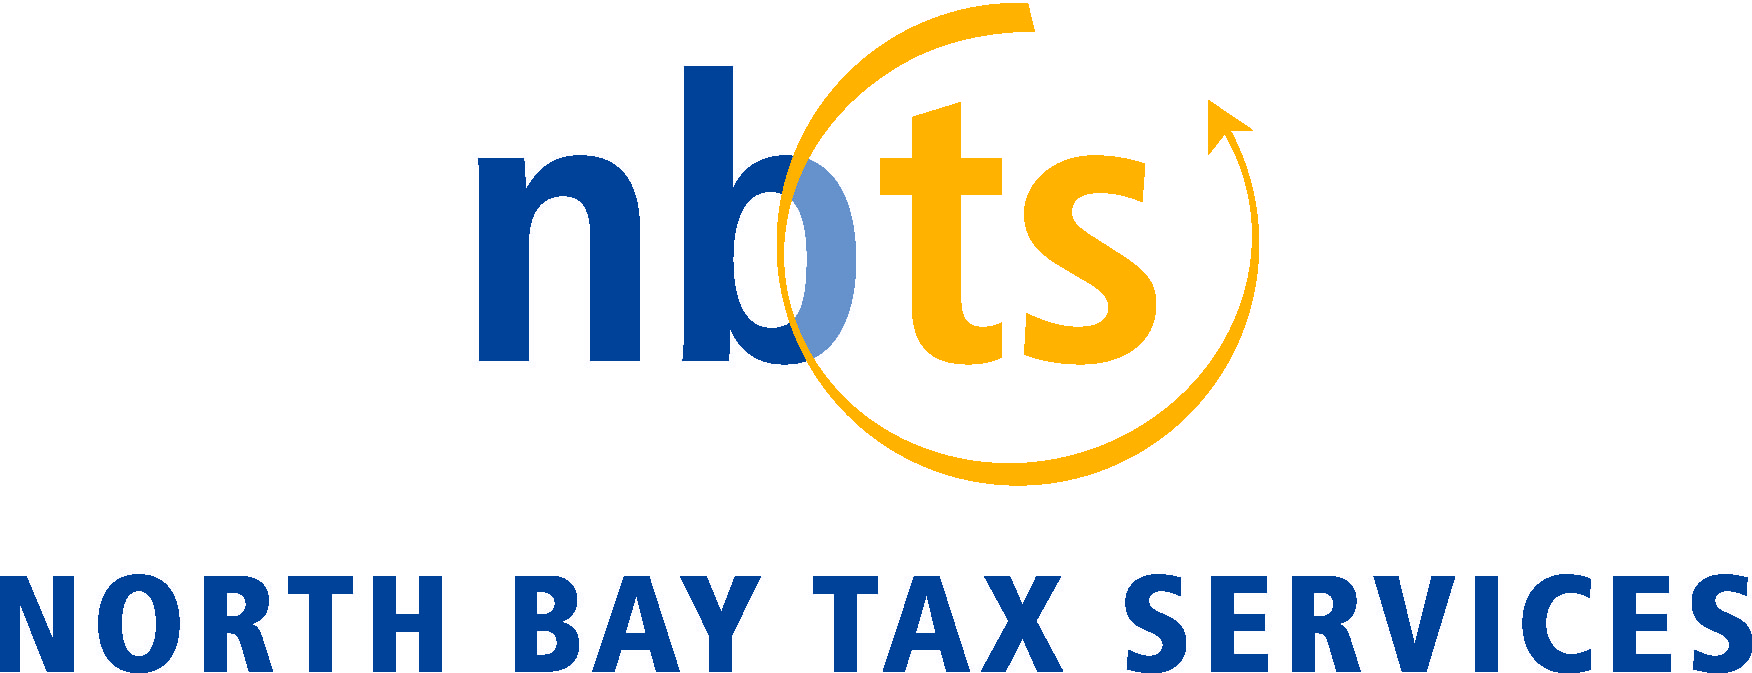 North Bay Tax Services